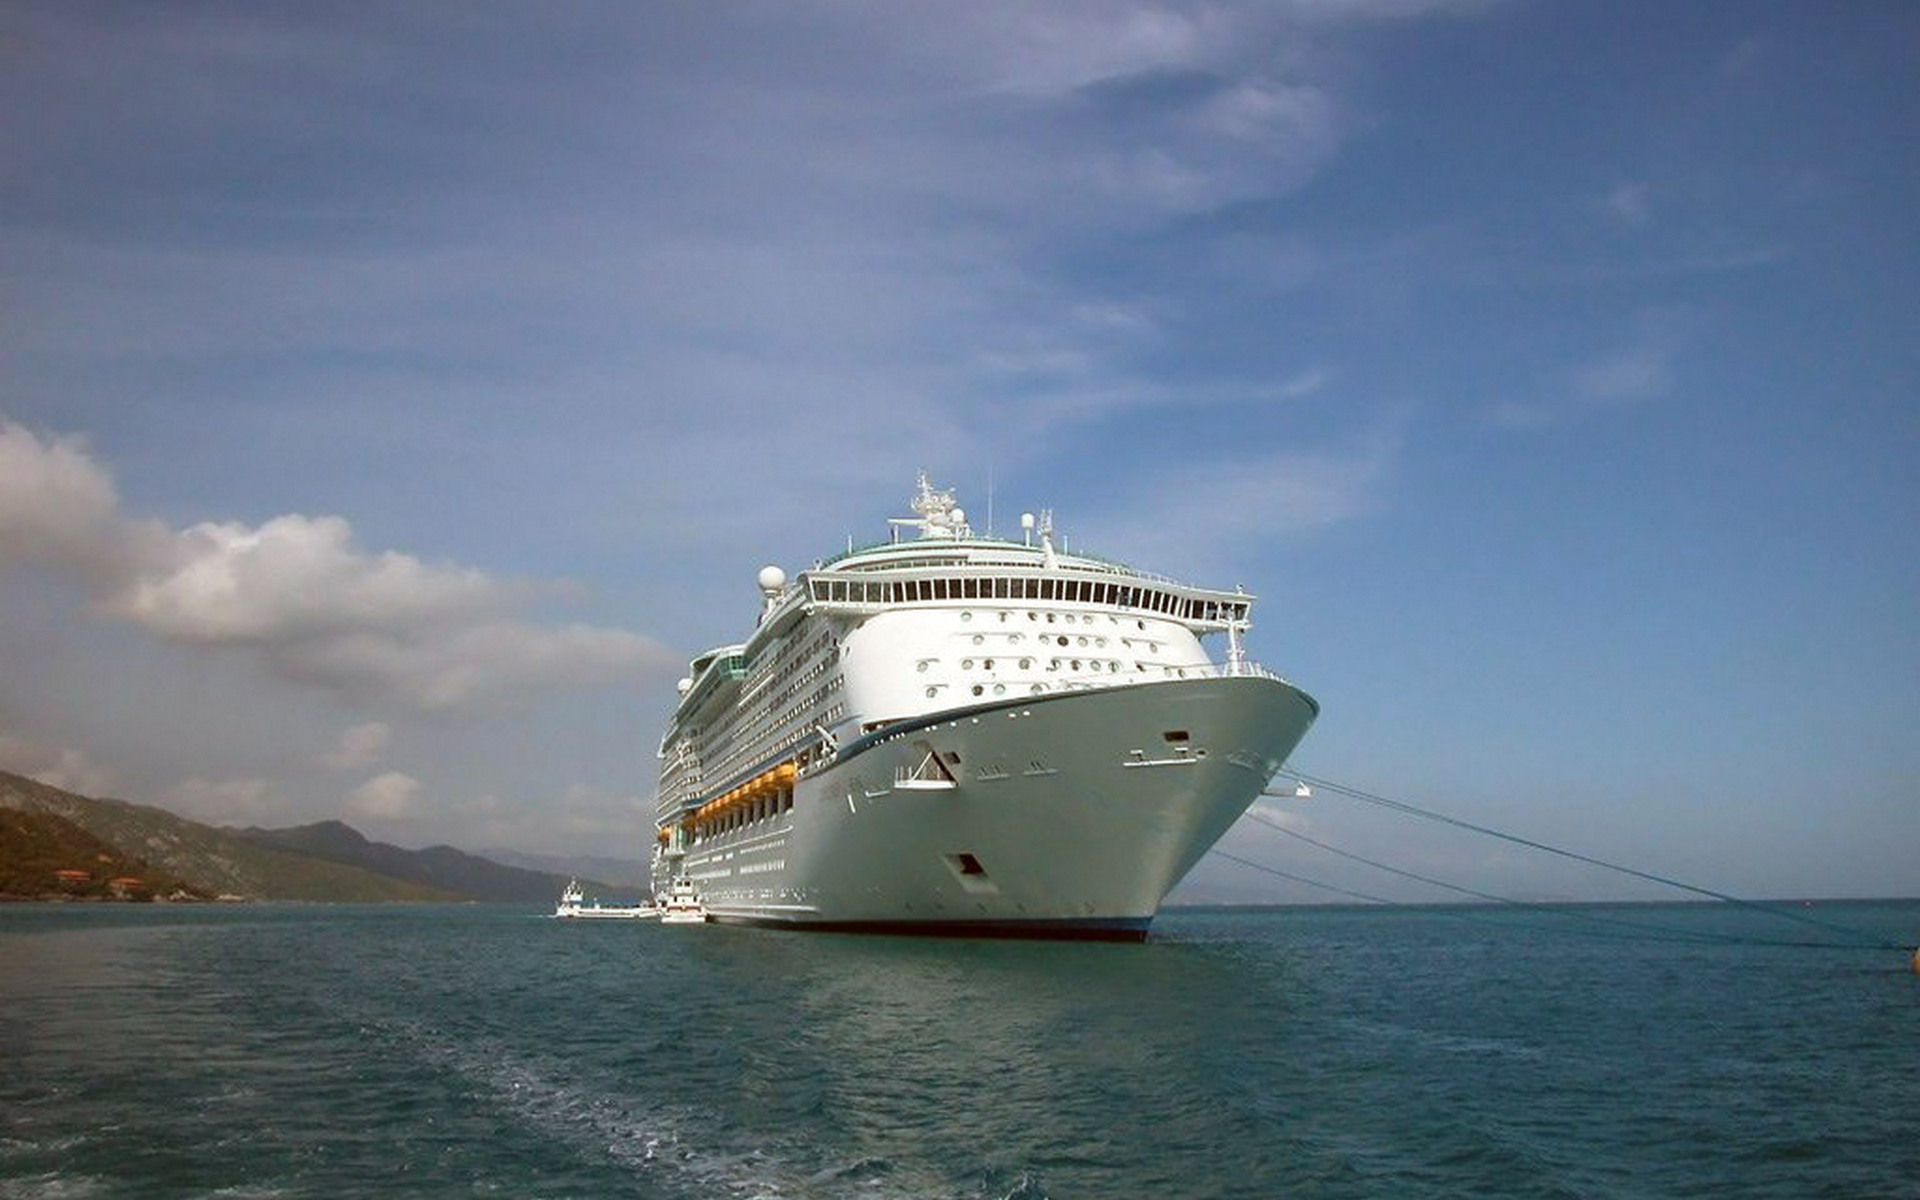 Cruise Ship Computer Wallpapers Desktop Backgrounds 1920x1200 ID 1920x1200